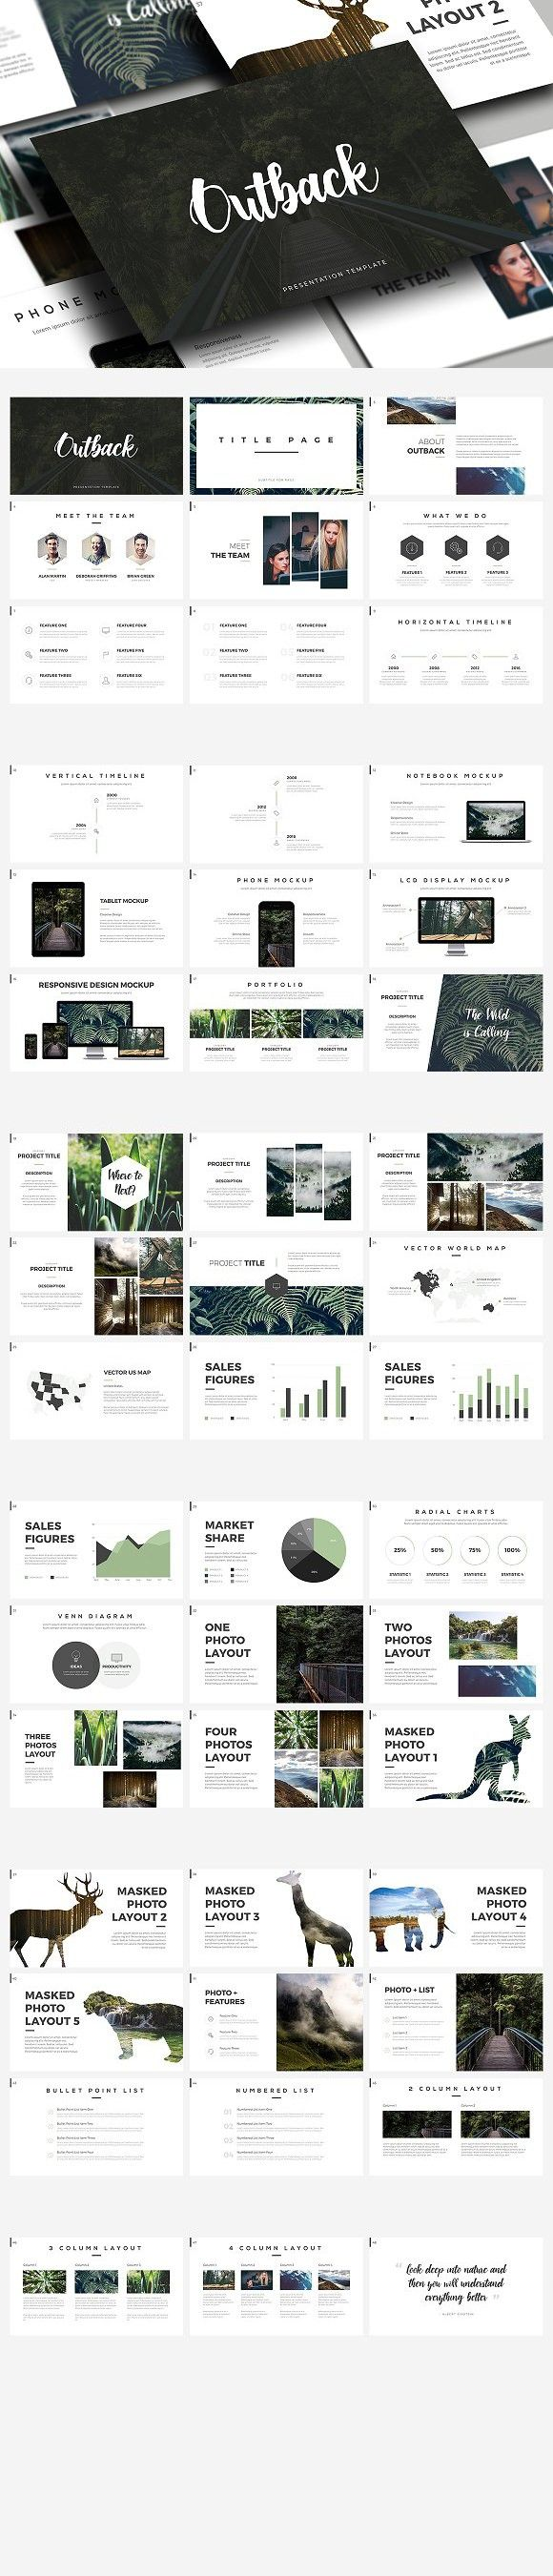 Outback - Presentation Template. PowerPoint Templates. $16.00